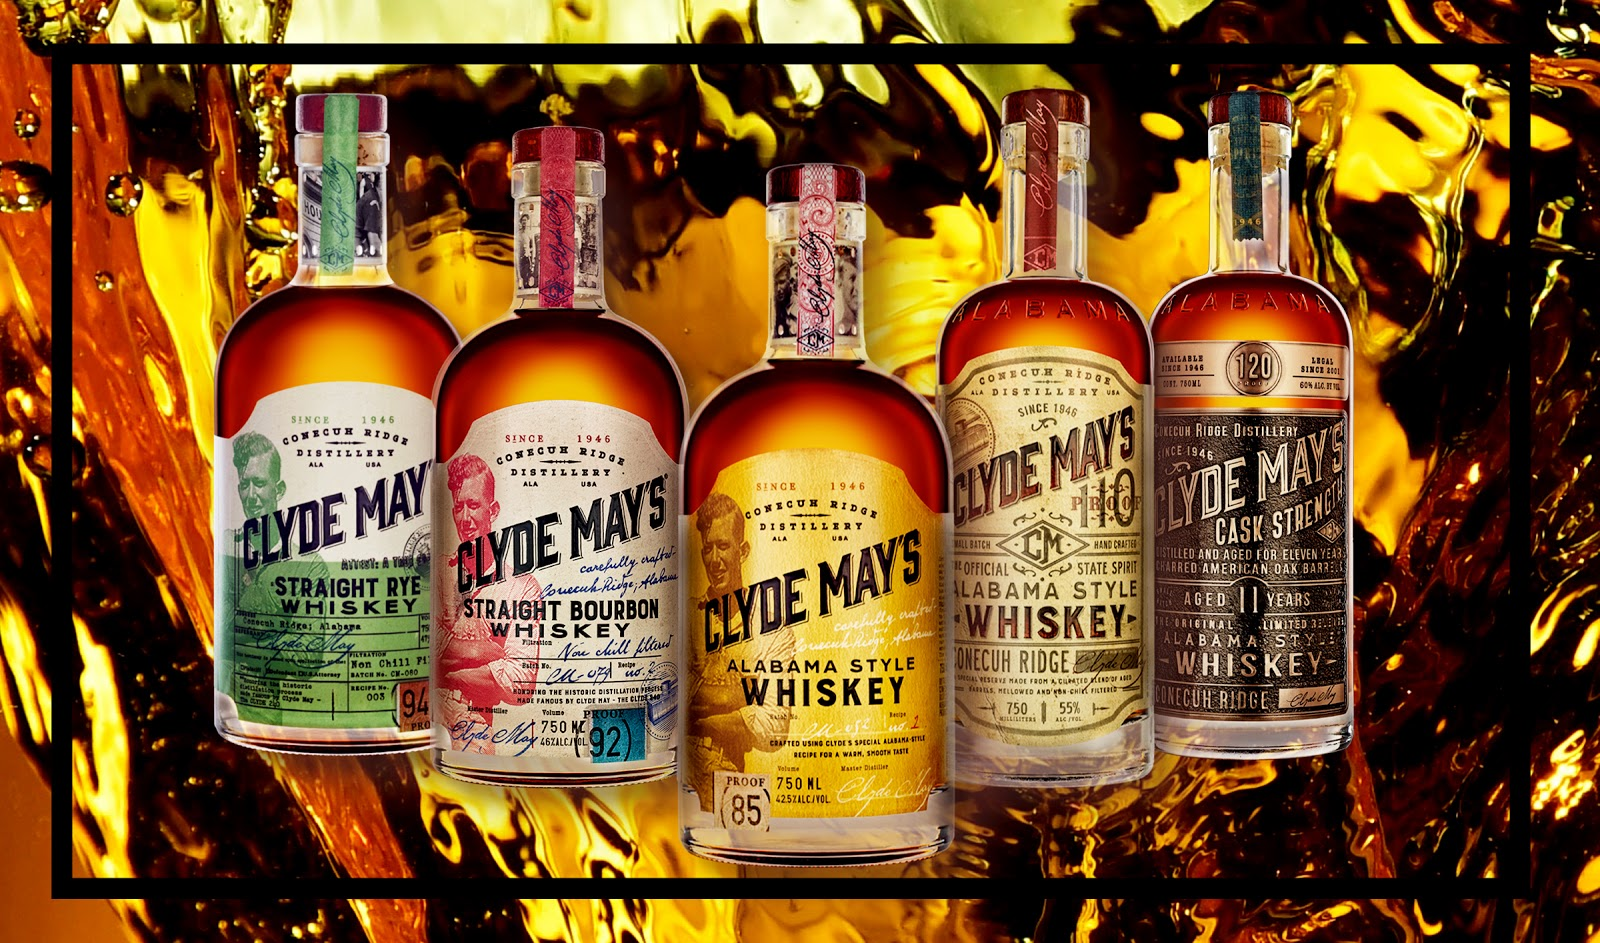 Clyde May's Whiskey Variations Bottles